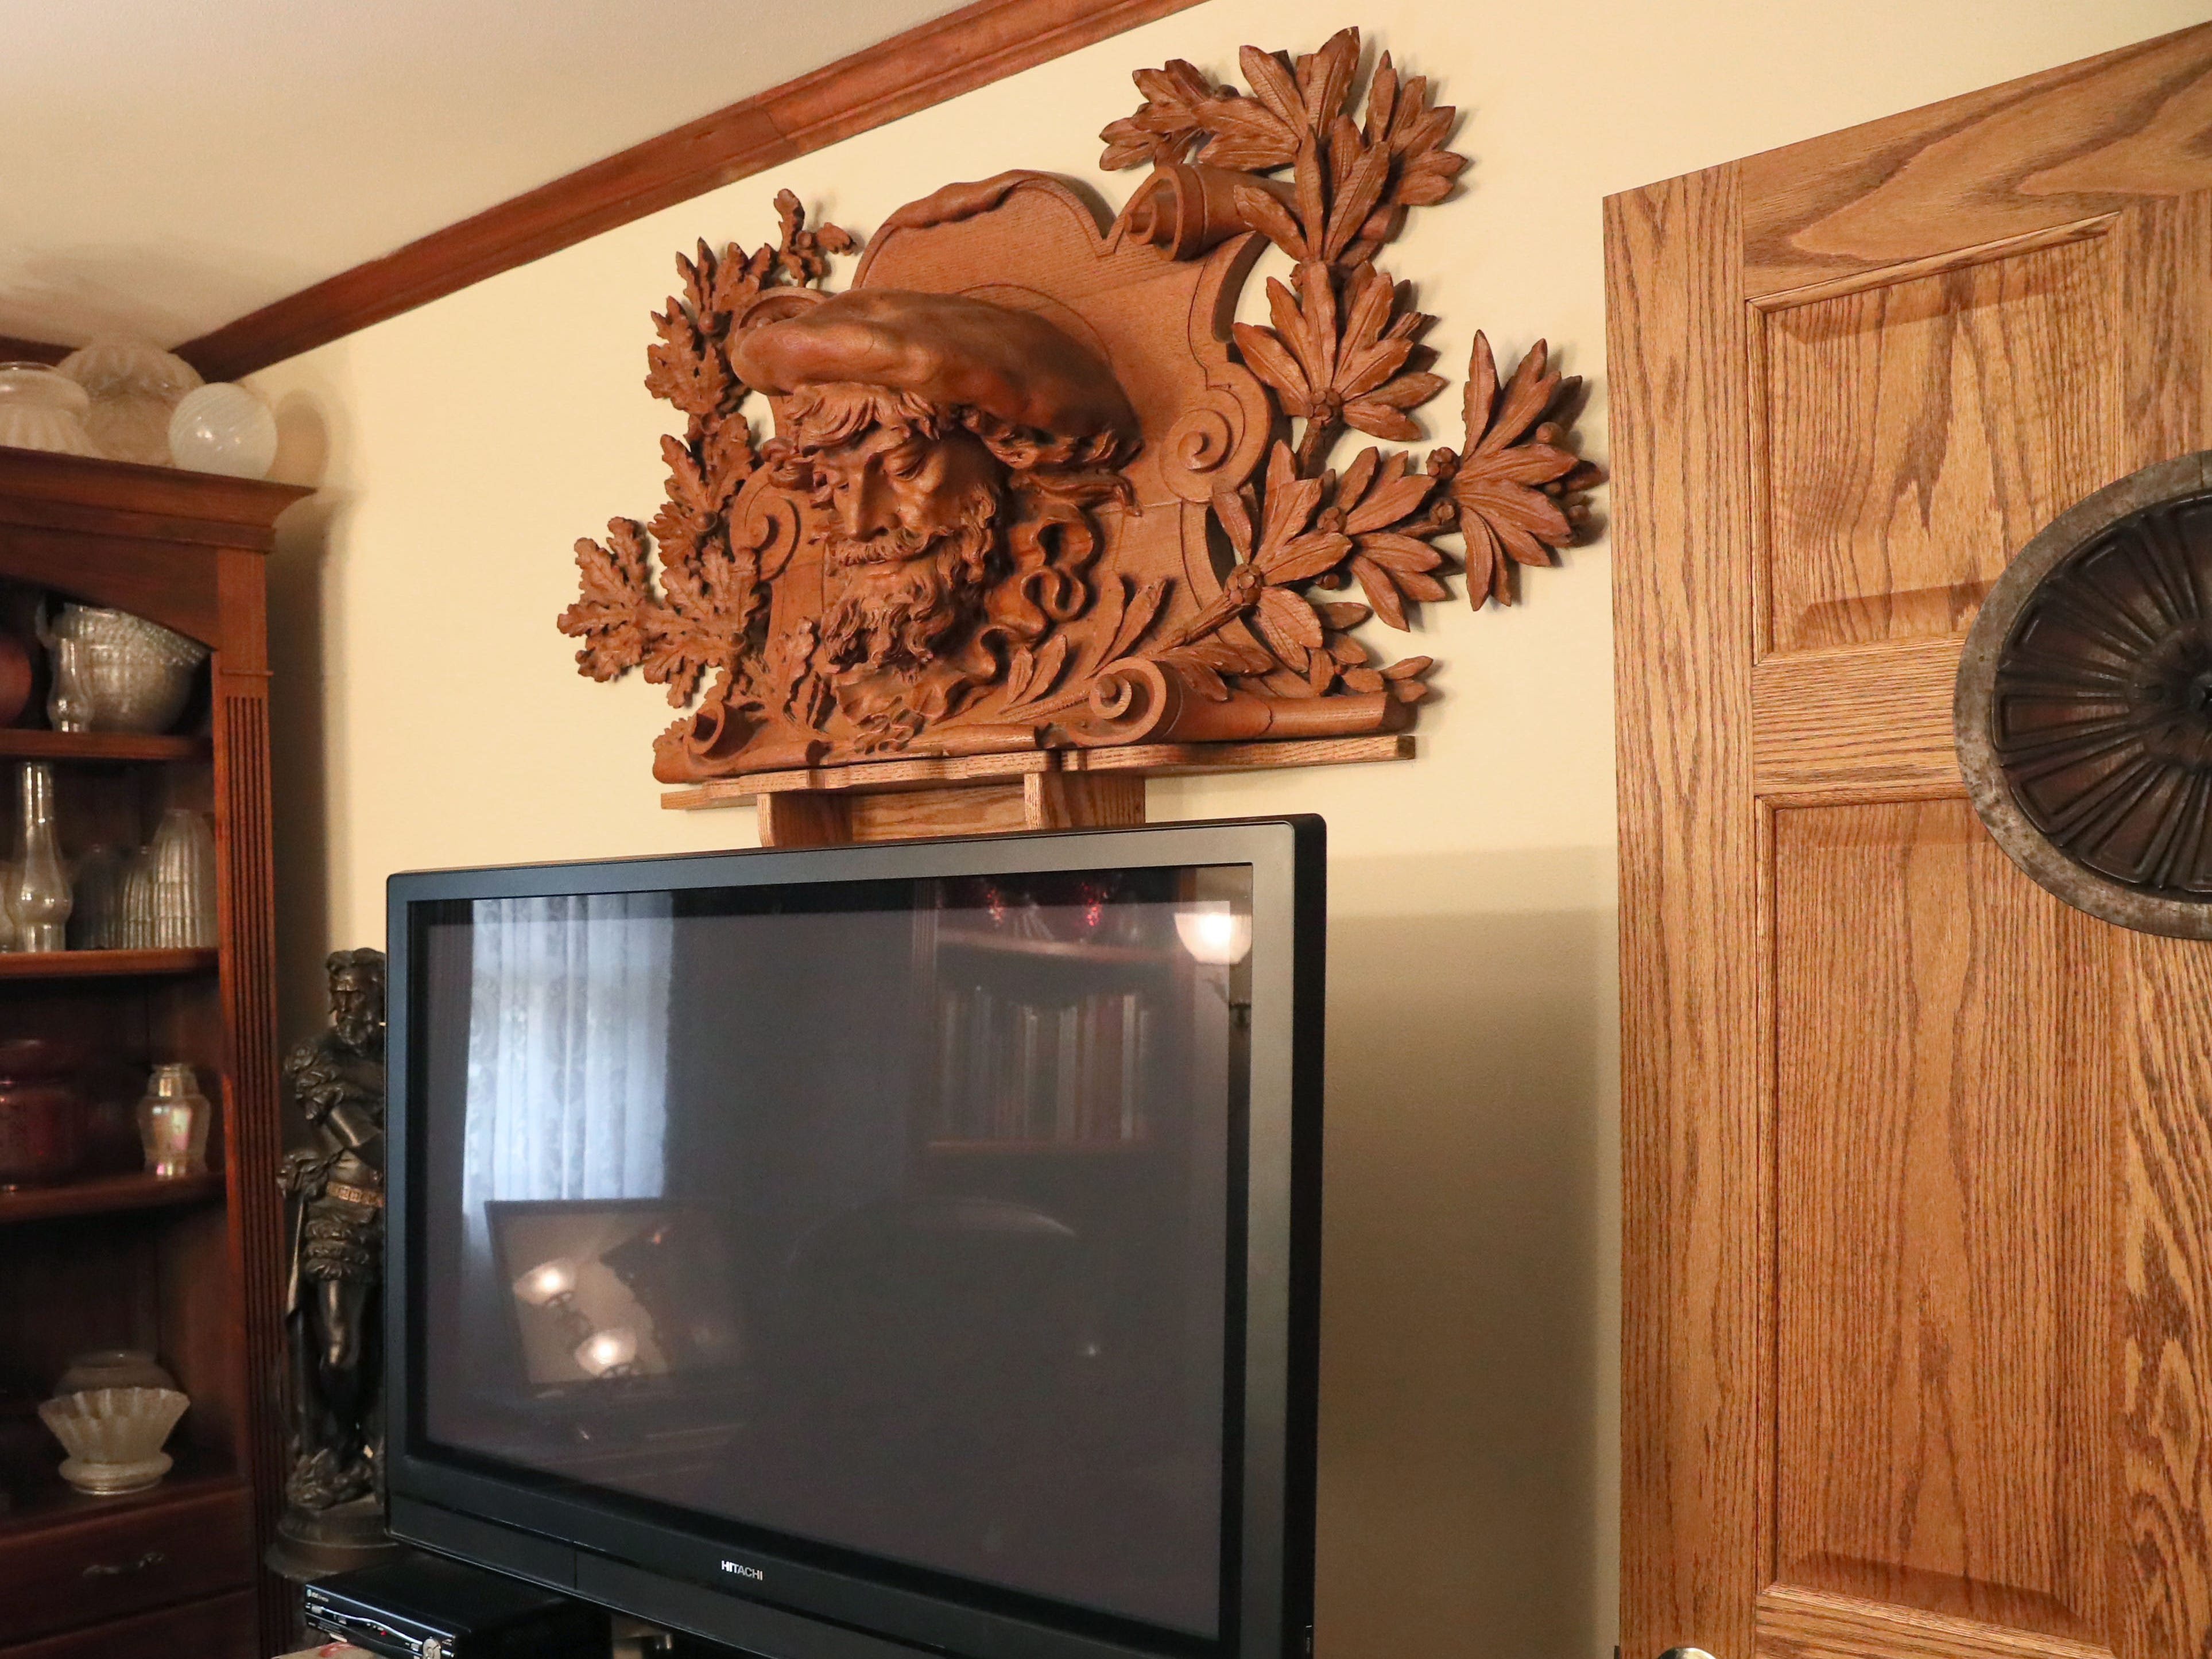 This elaborate carving above the TV in the den came from the Shandein Mansion at North 24th Street and West Wisconsin Avenue.